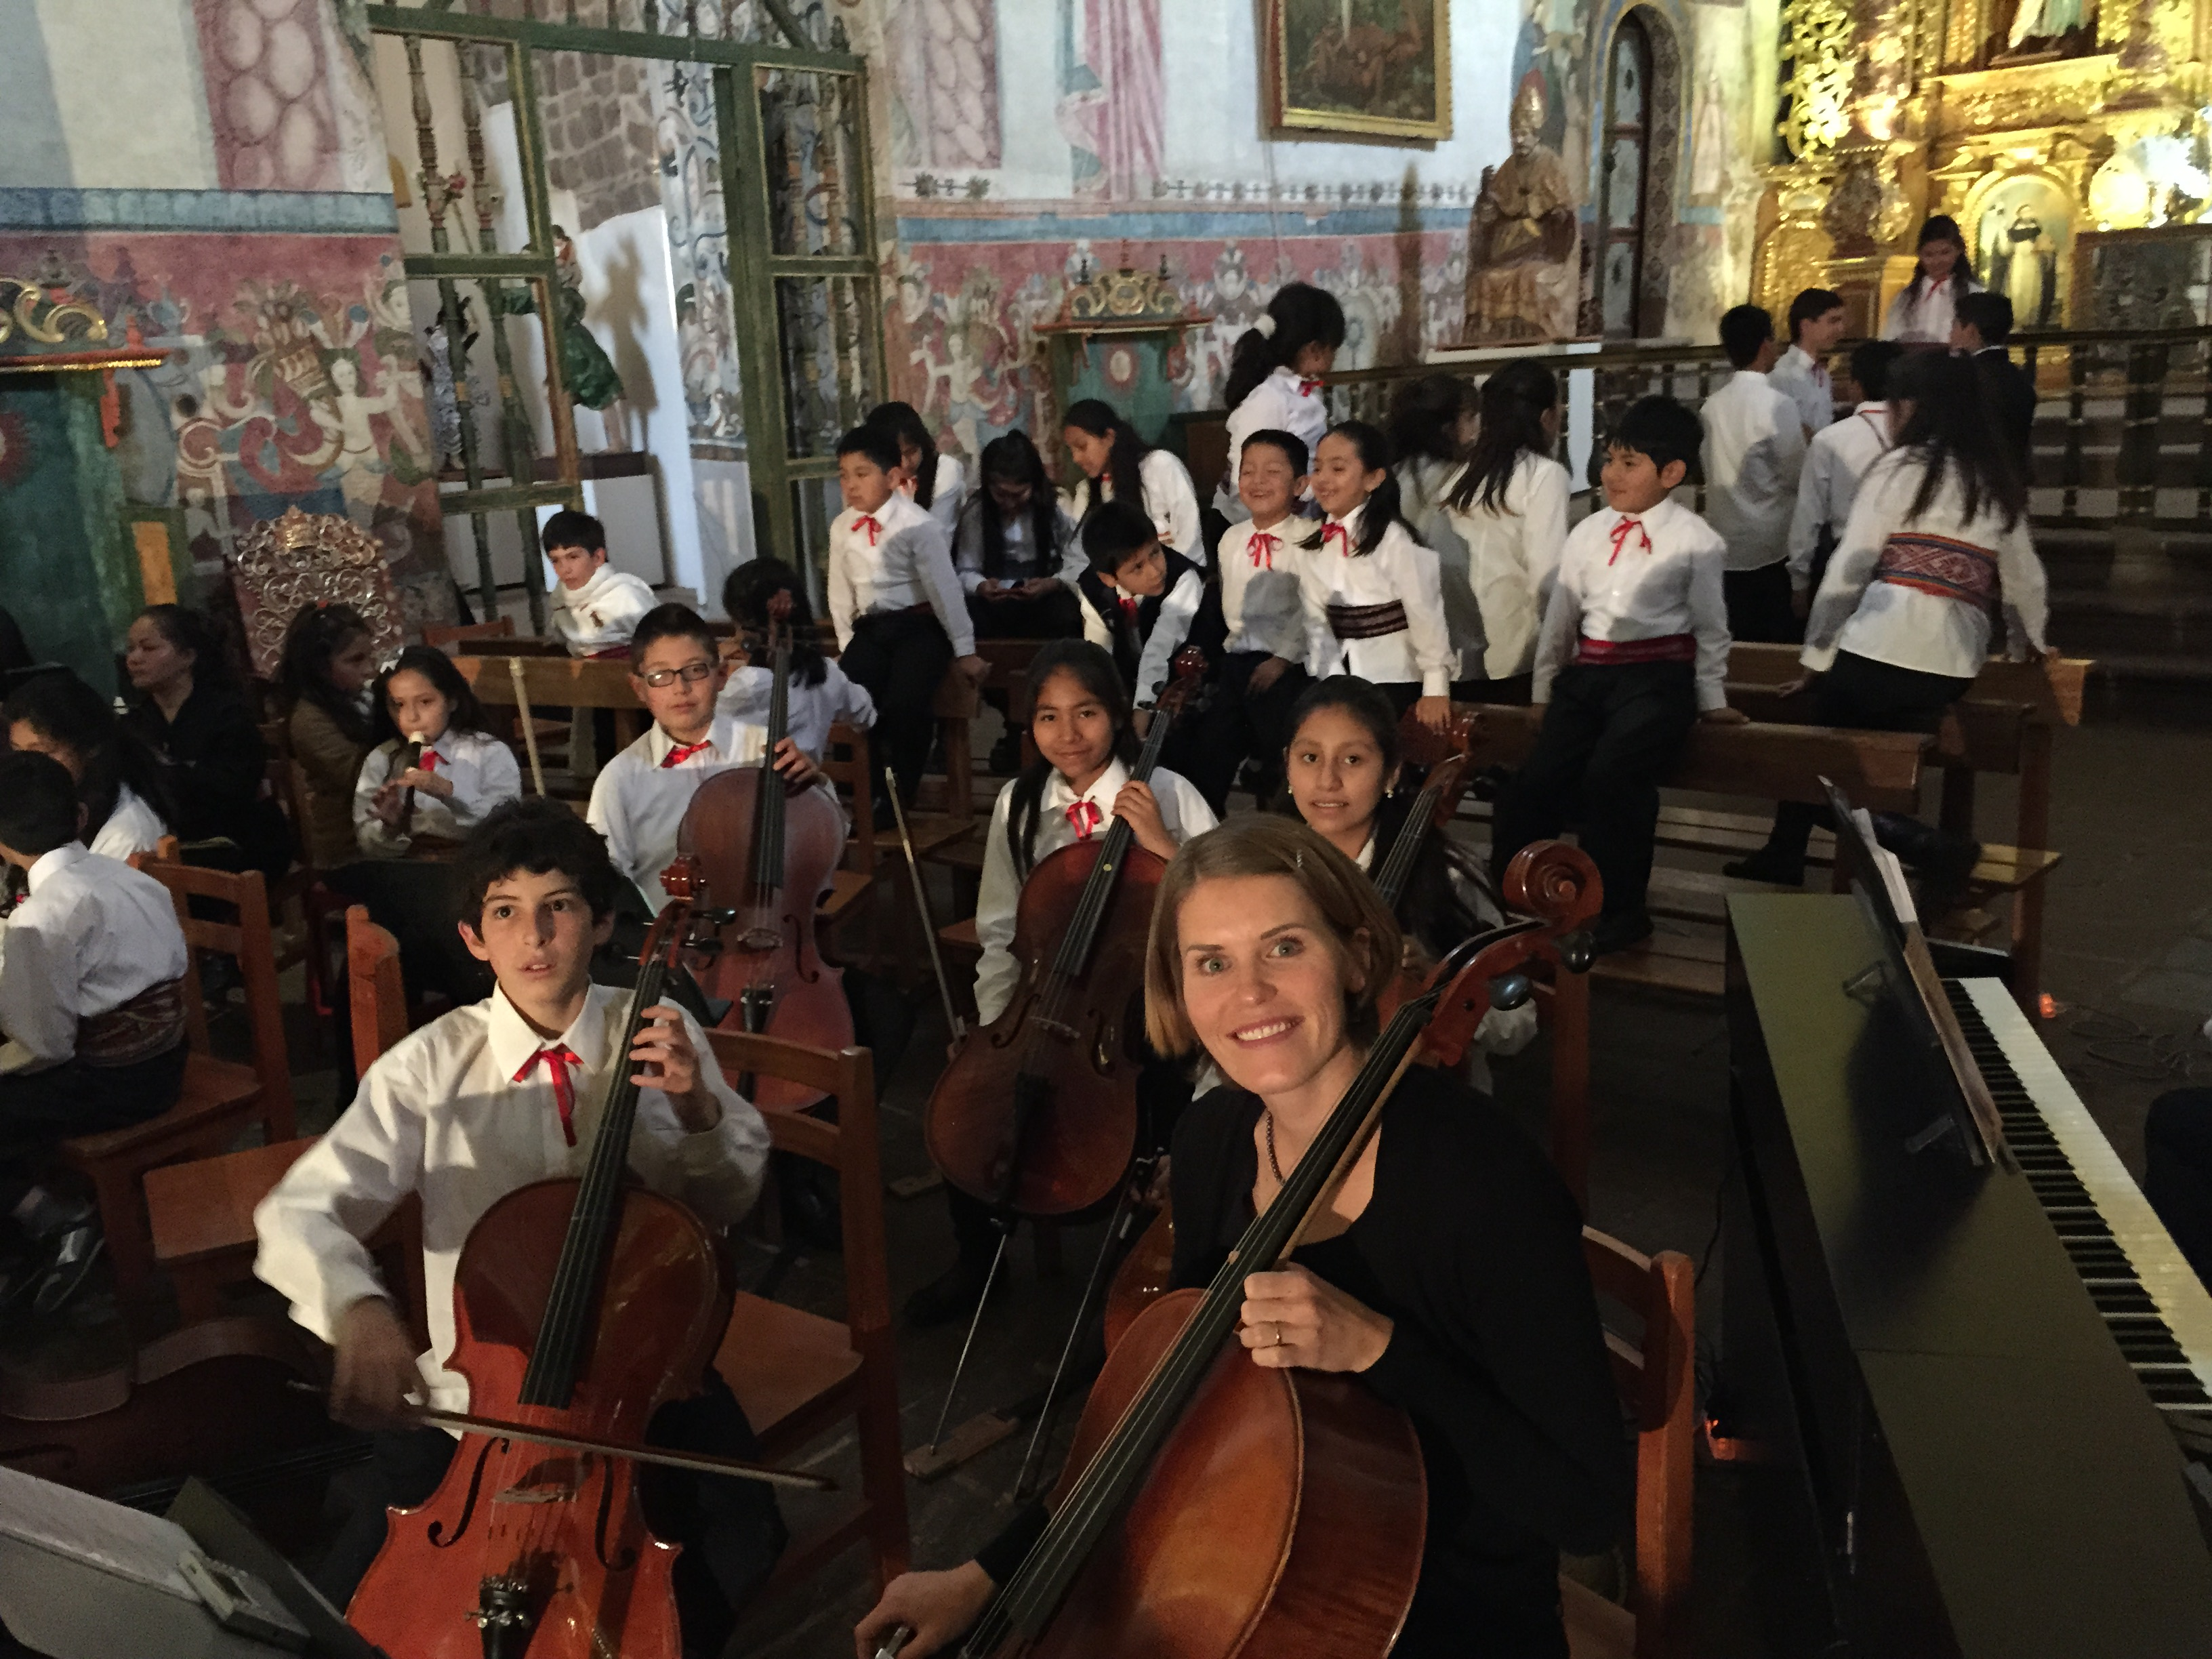 An orchestra concert with nearly all of the Peruvian string students at Qantu Cusco and cellist Megan Titensor, Cathedral of Cusco, Andahuaylillas, Peru, Dec 6, 2015 | Photo by Jerson Flores. St. George News